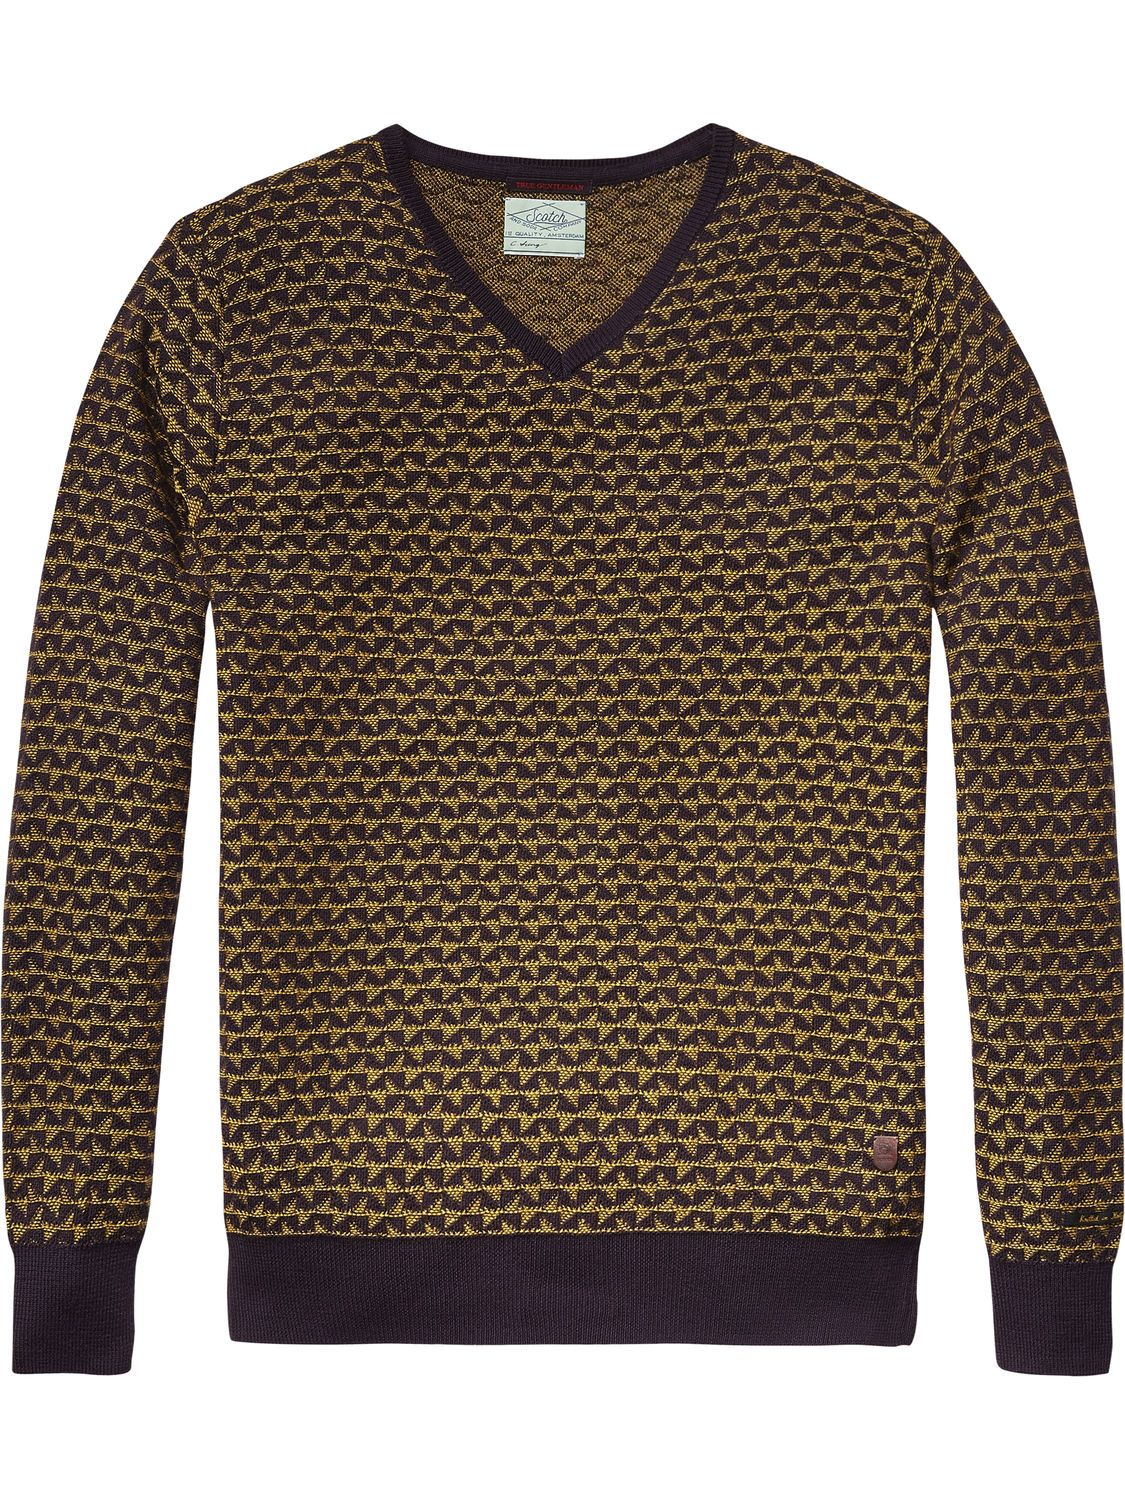 Jacquard-Pullover in Retro-Optik | Pullover | Herrenbekleidung von Scotch & Soda